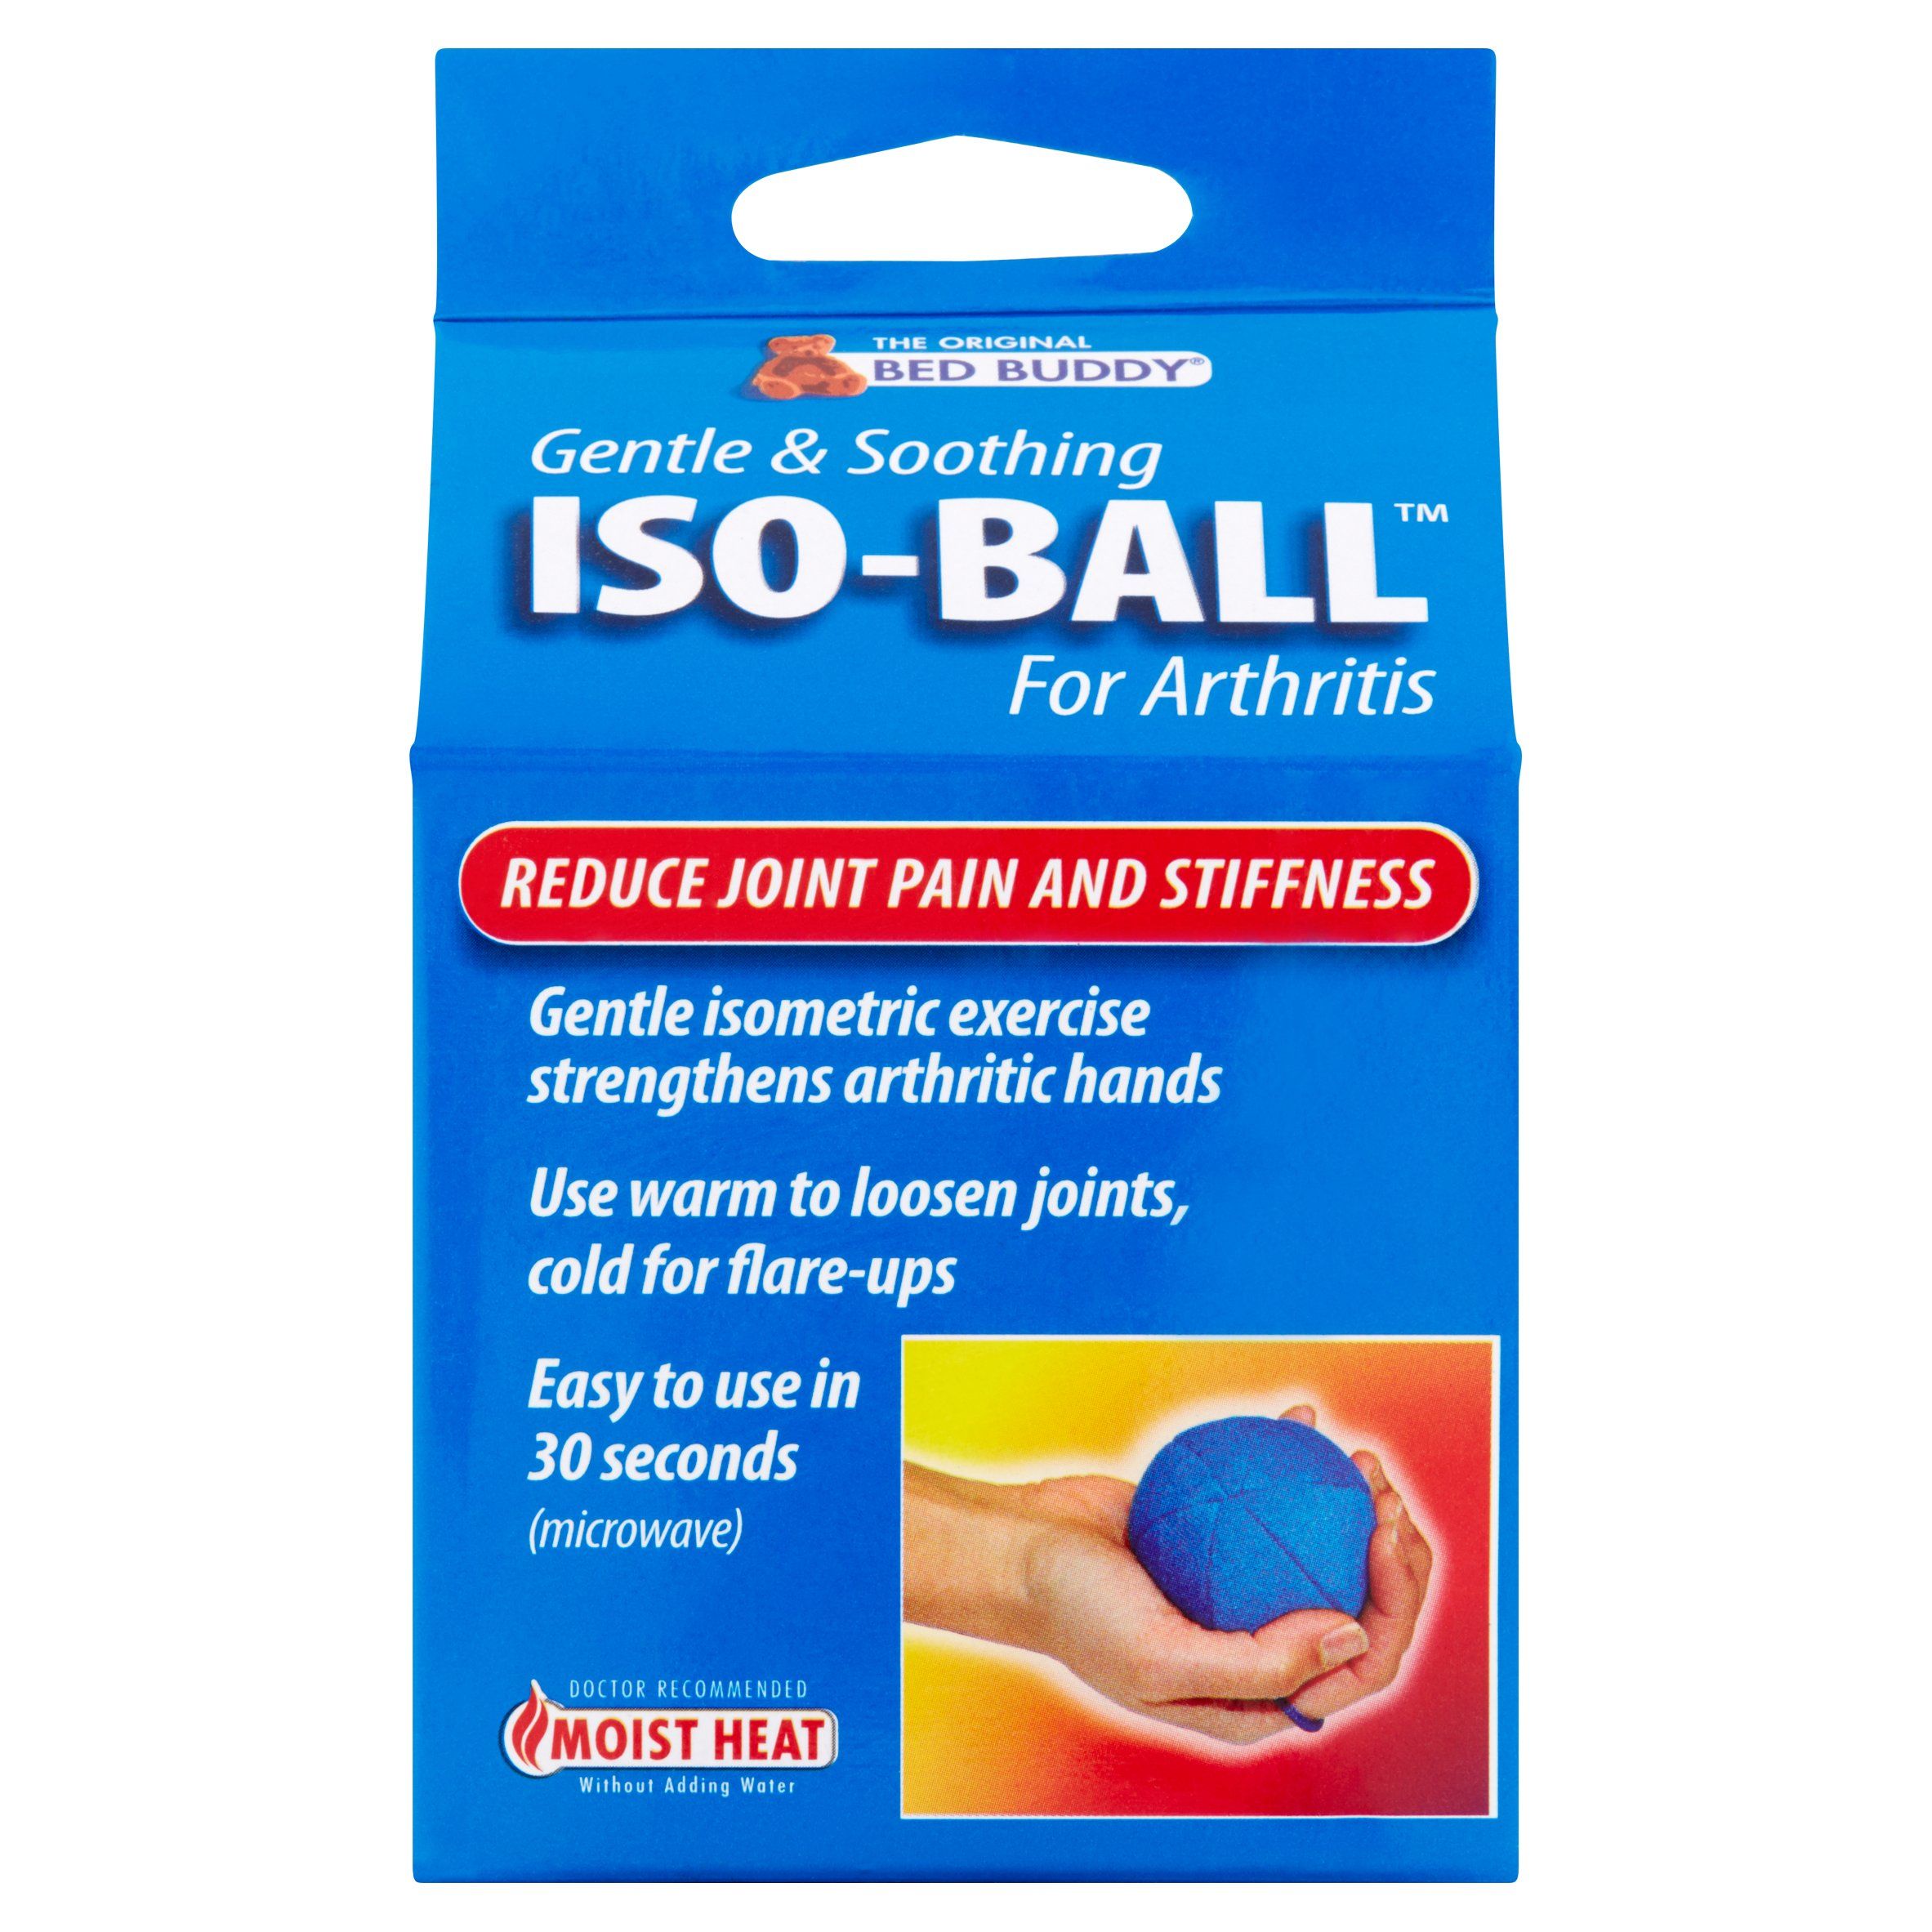 Bed Buddy Gentle & Soothing Iso-Ball for Arthritis